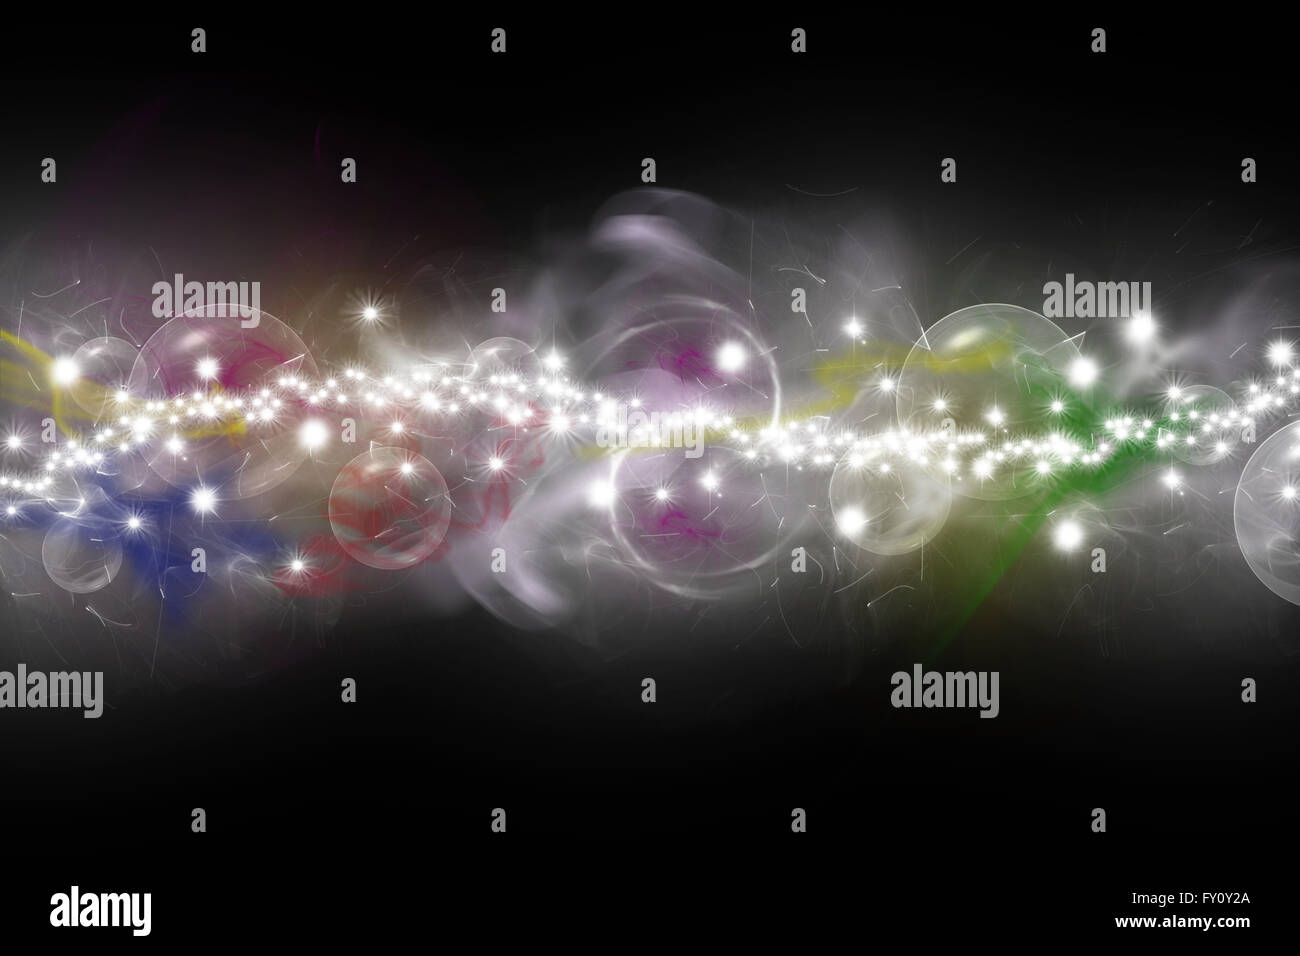 Abstract  composed of colored unfocused smoke, lights and objects on the black background. - Stock Image